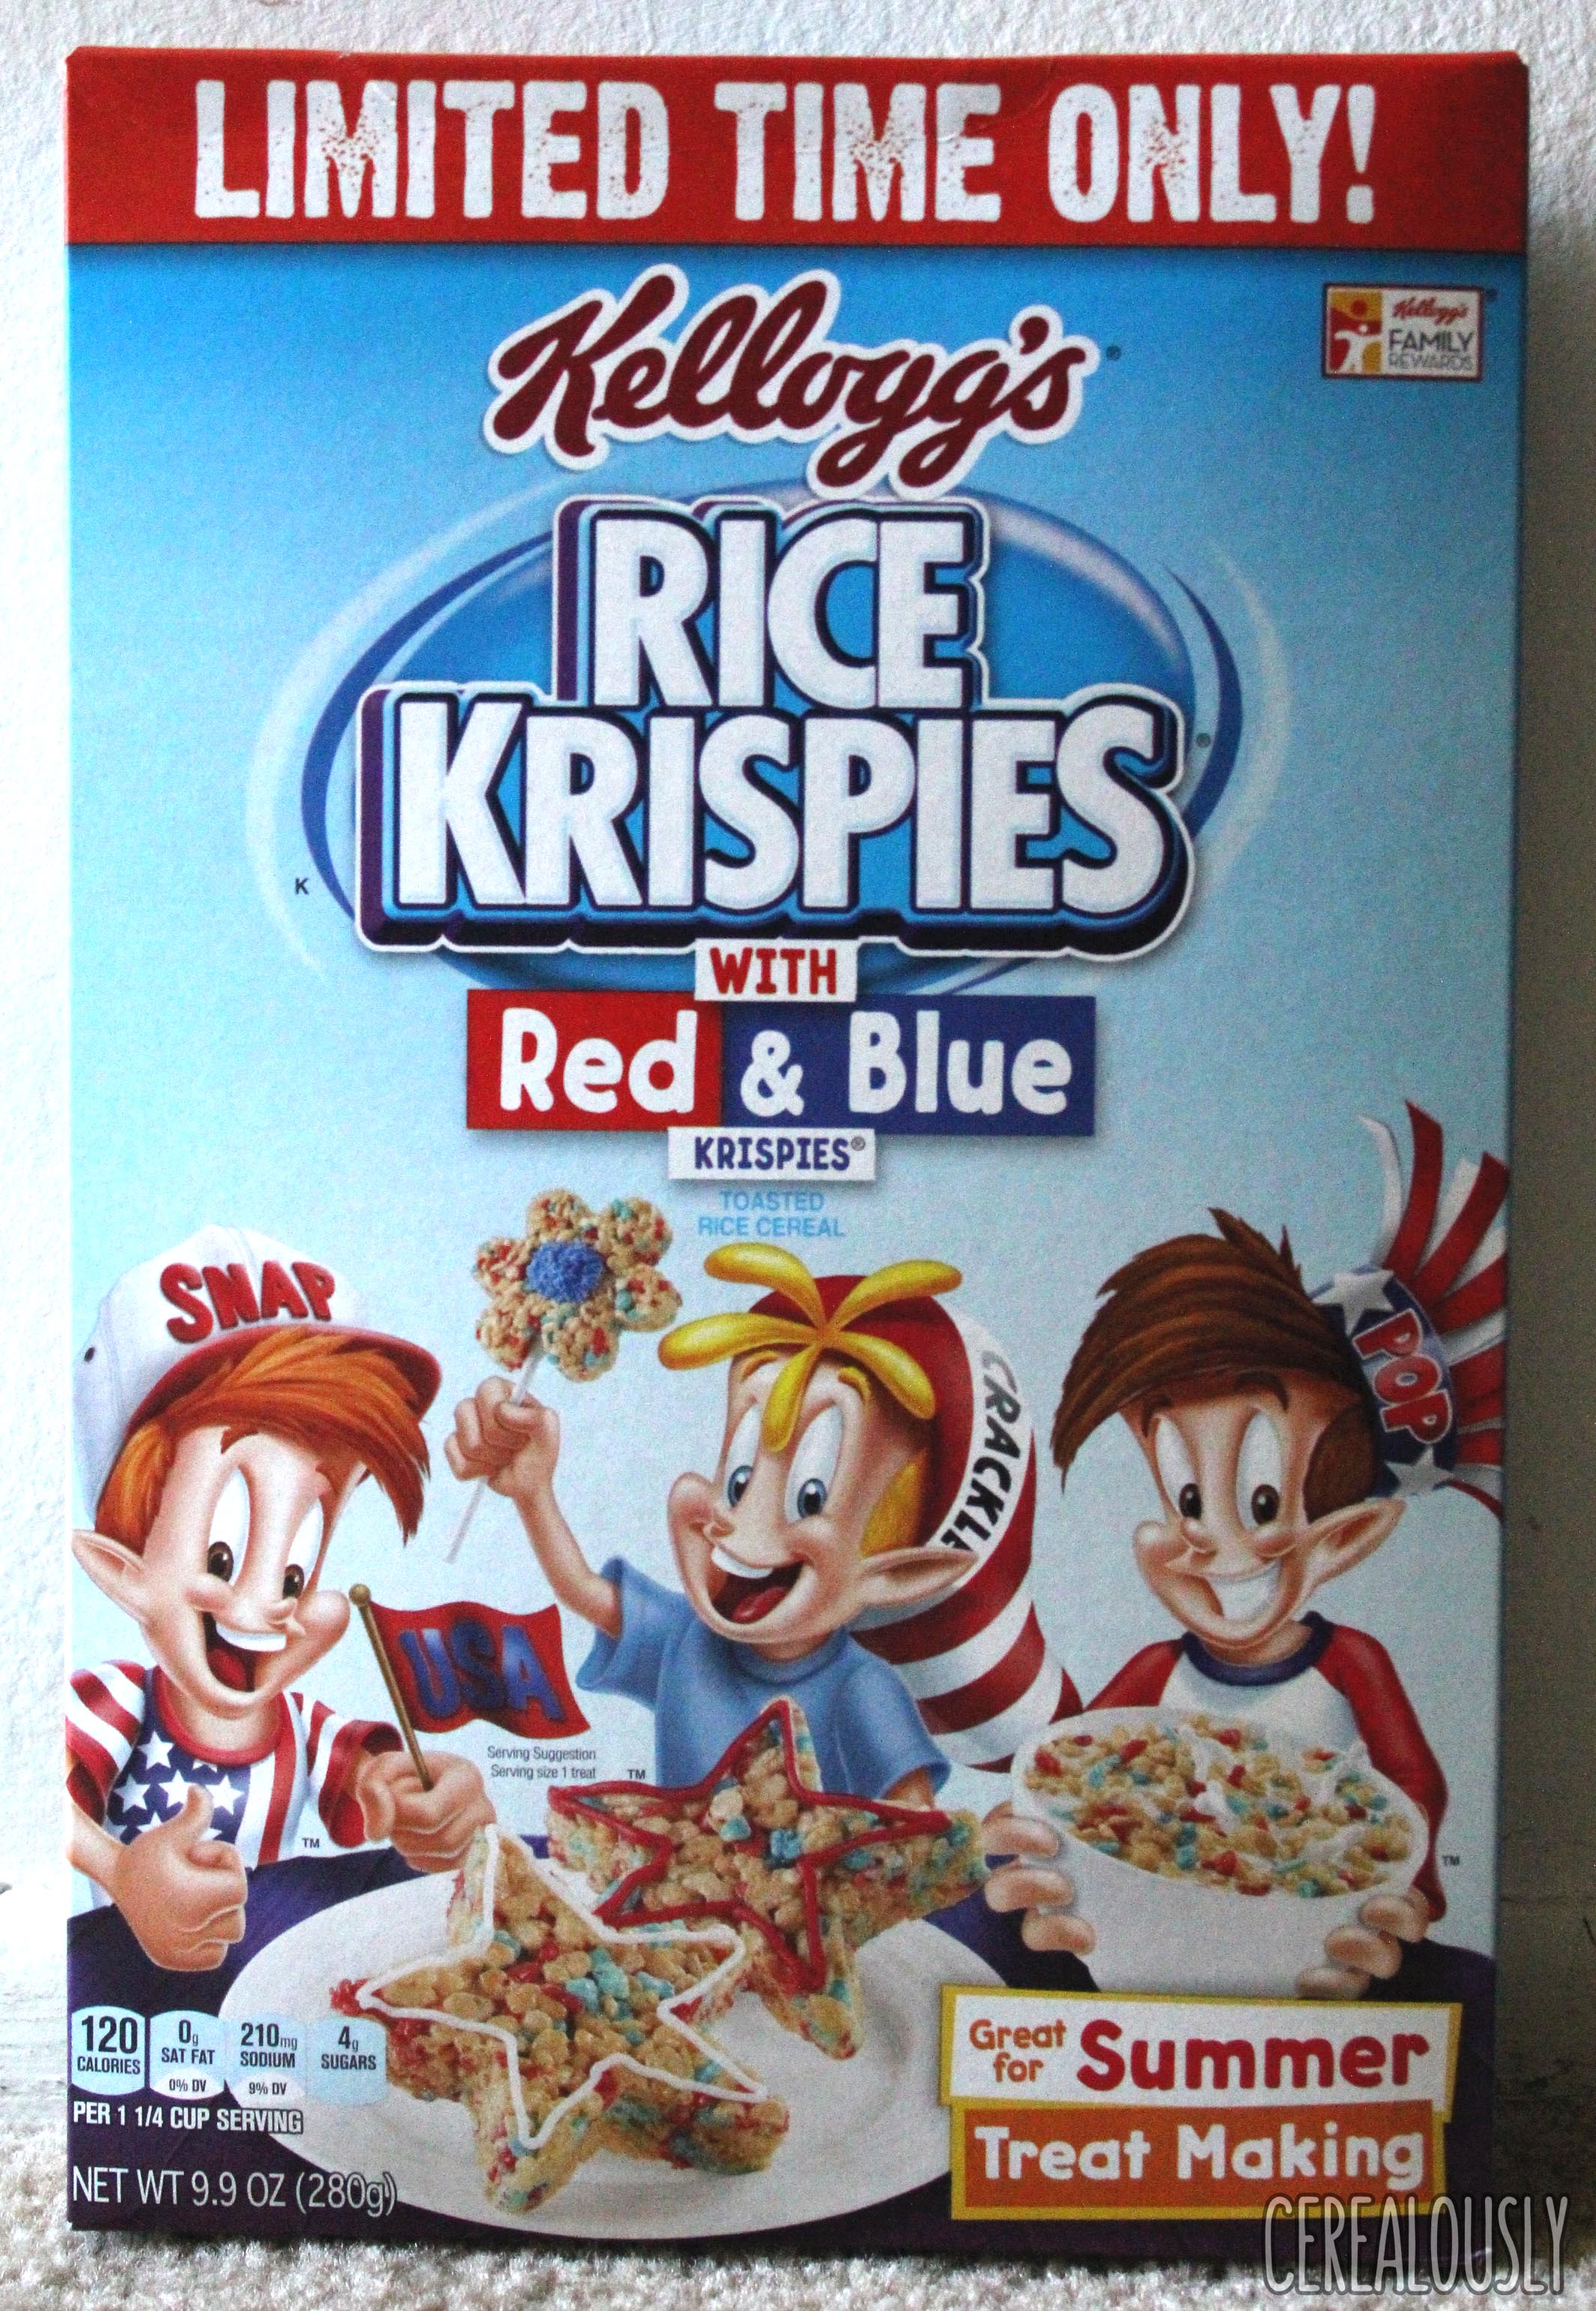 Review kelloggs rice krispies with red blue krispies cereal and review kelloggs rice krispies with red blue krispies cereal and happy fourth of july ccuart Gallery